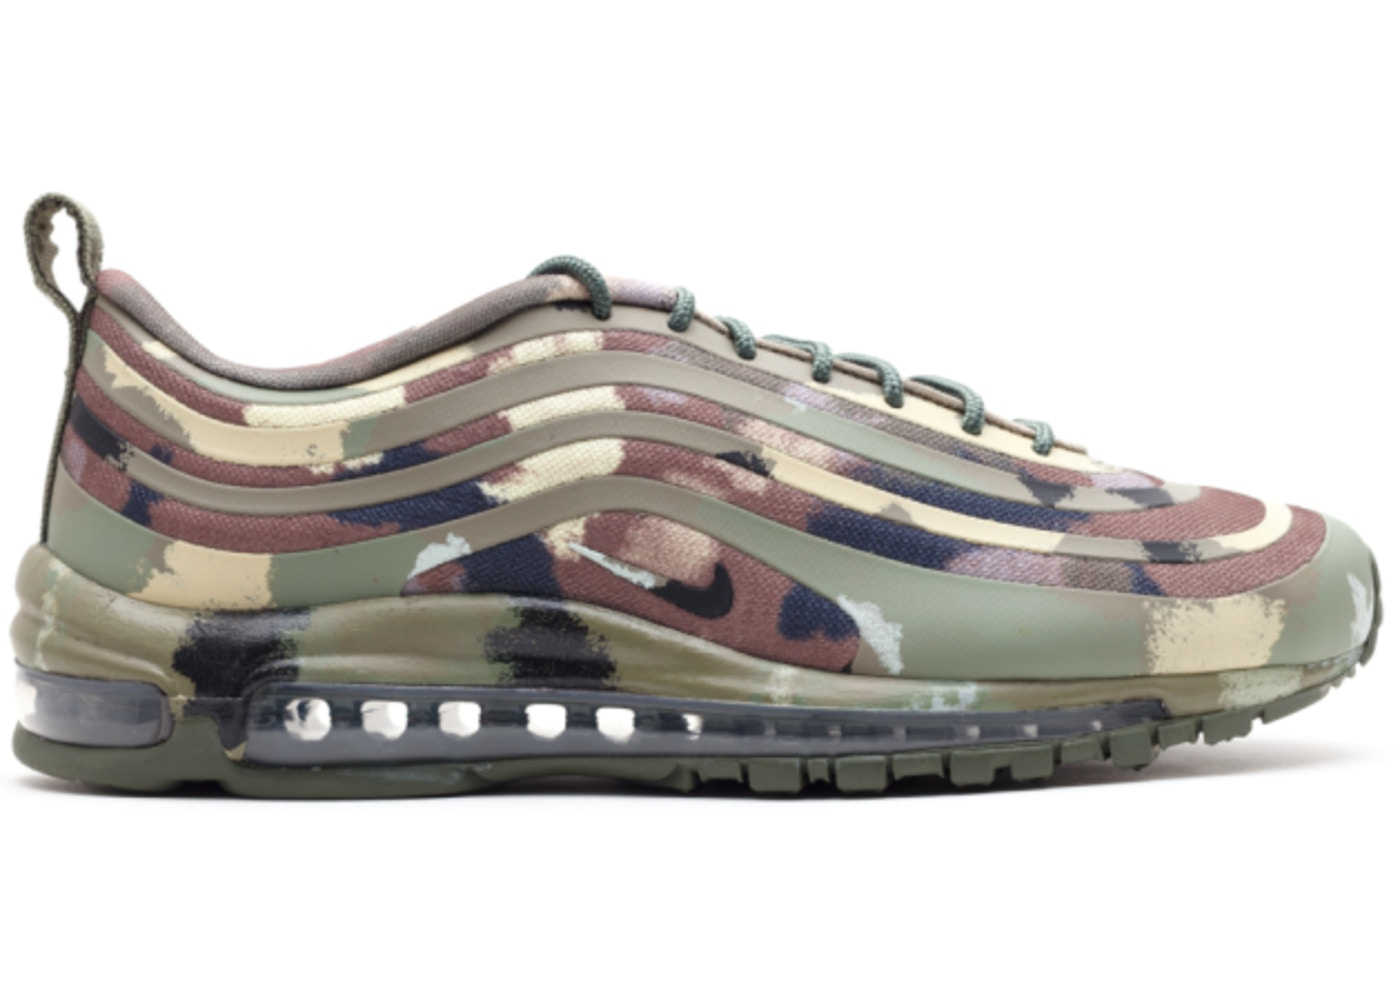 new products 7197a fa6d7 Air Max 97 Country Camo Pack Italy - 596530-220